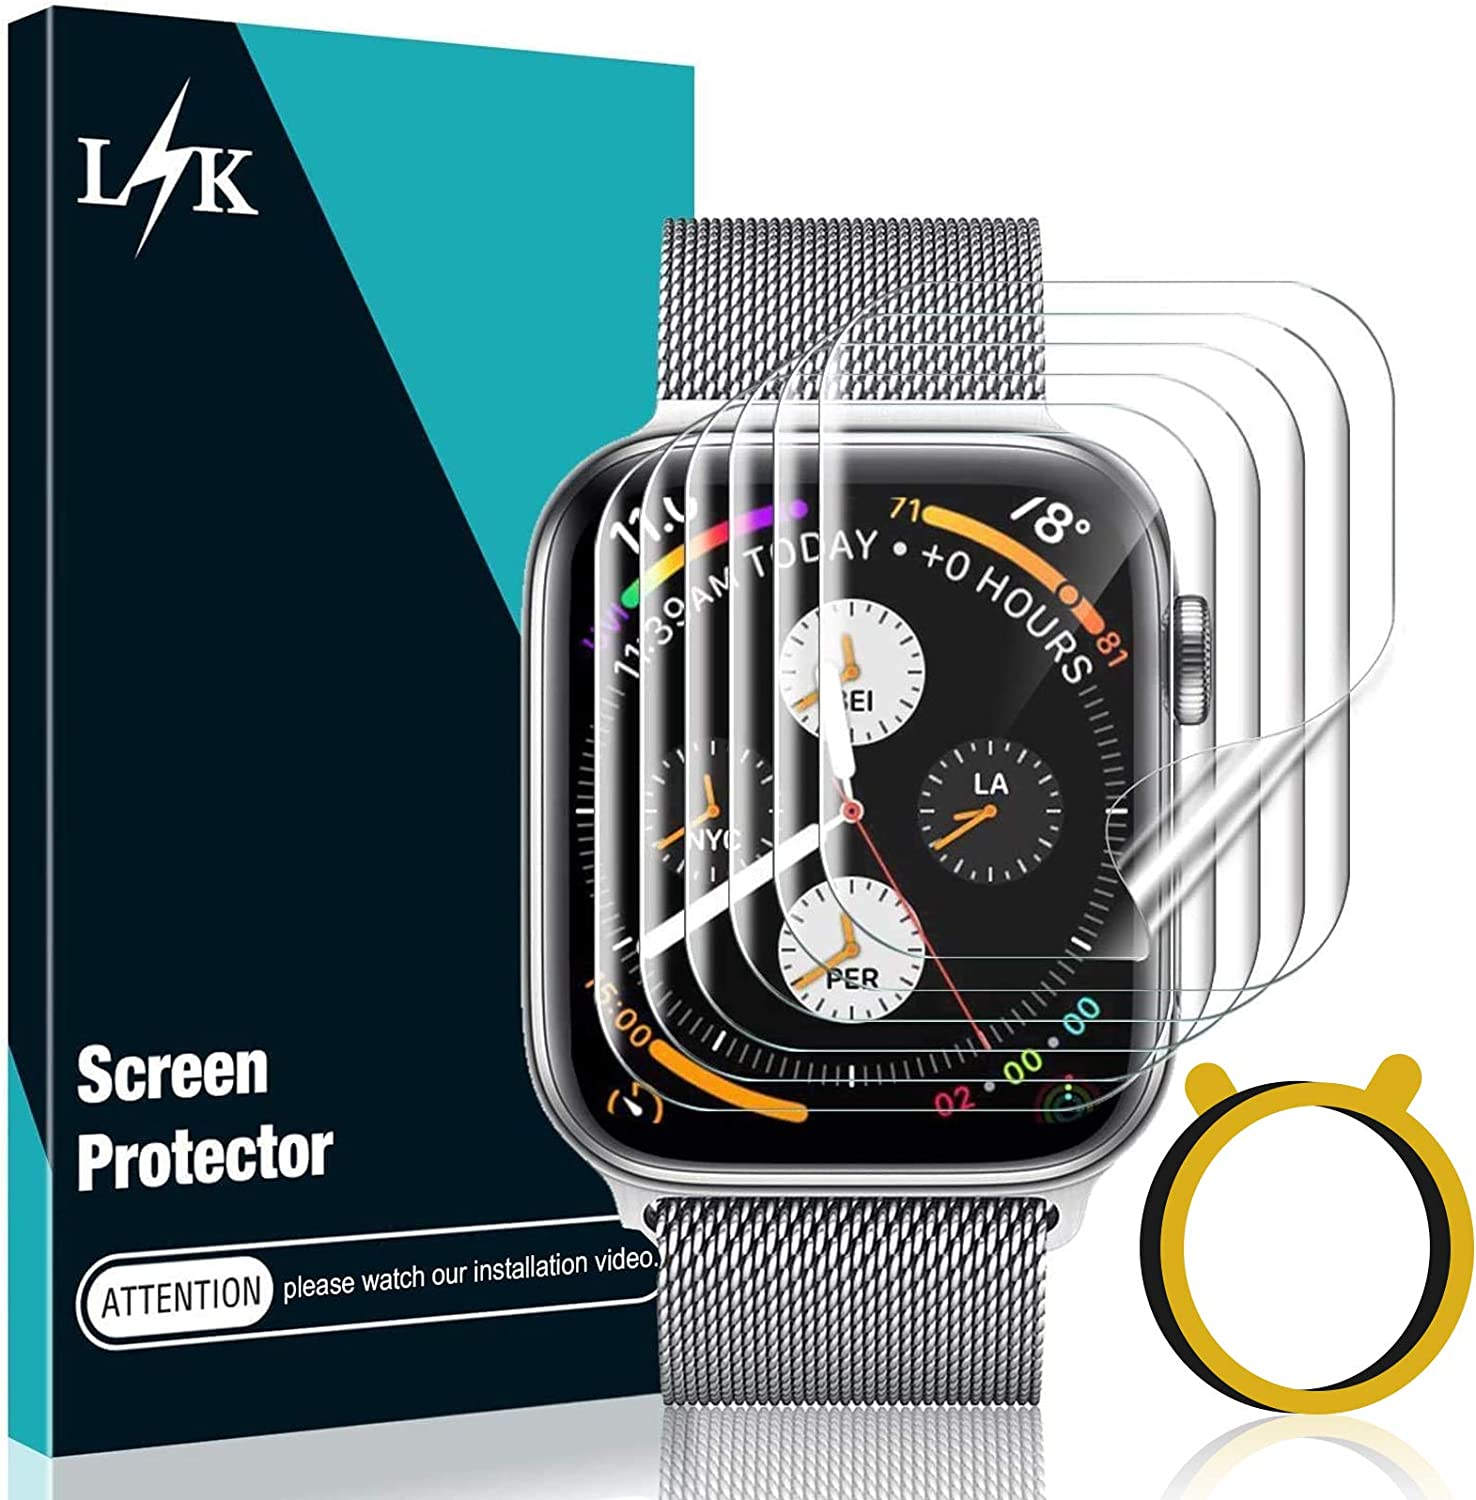 6 Pack LϟK Screen Protector Compatible for Apple Watch 42MM Series 3 2 1 with Circle Installation Tool, Self Healing, Bubble Free for iWatch 3 2 1 42MM Flexible TPU Film